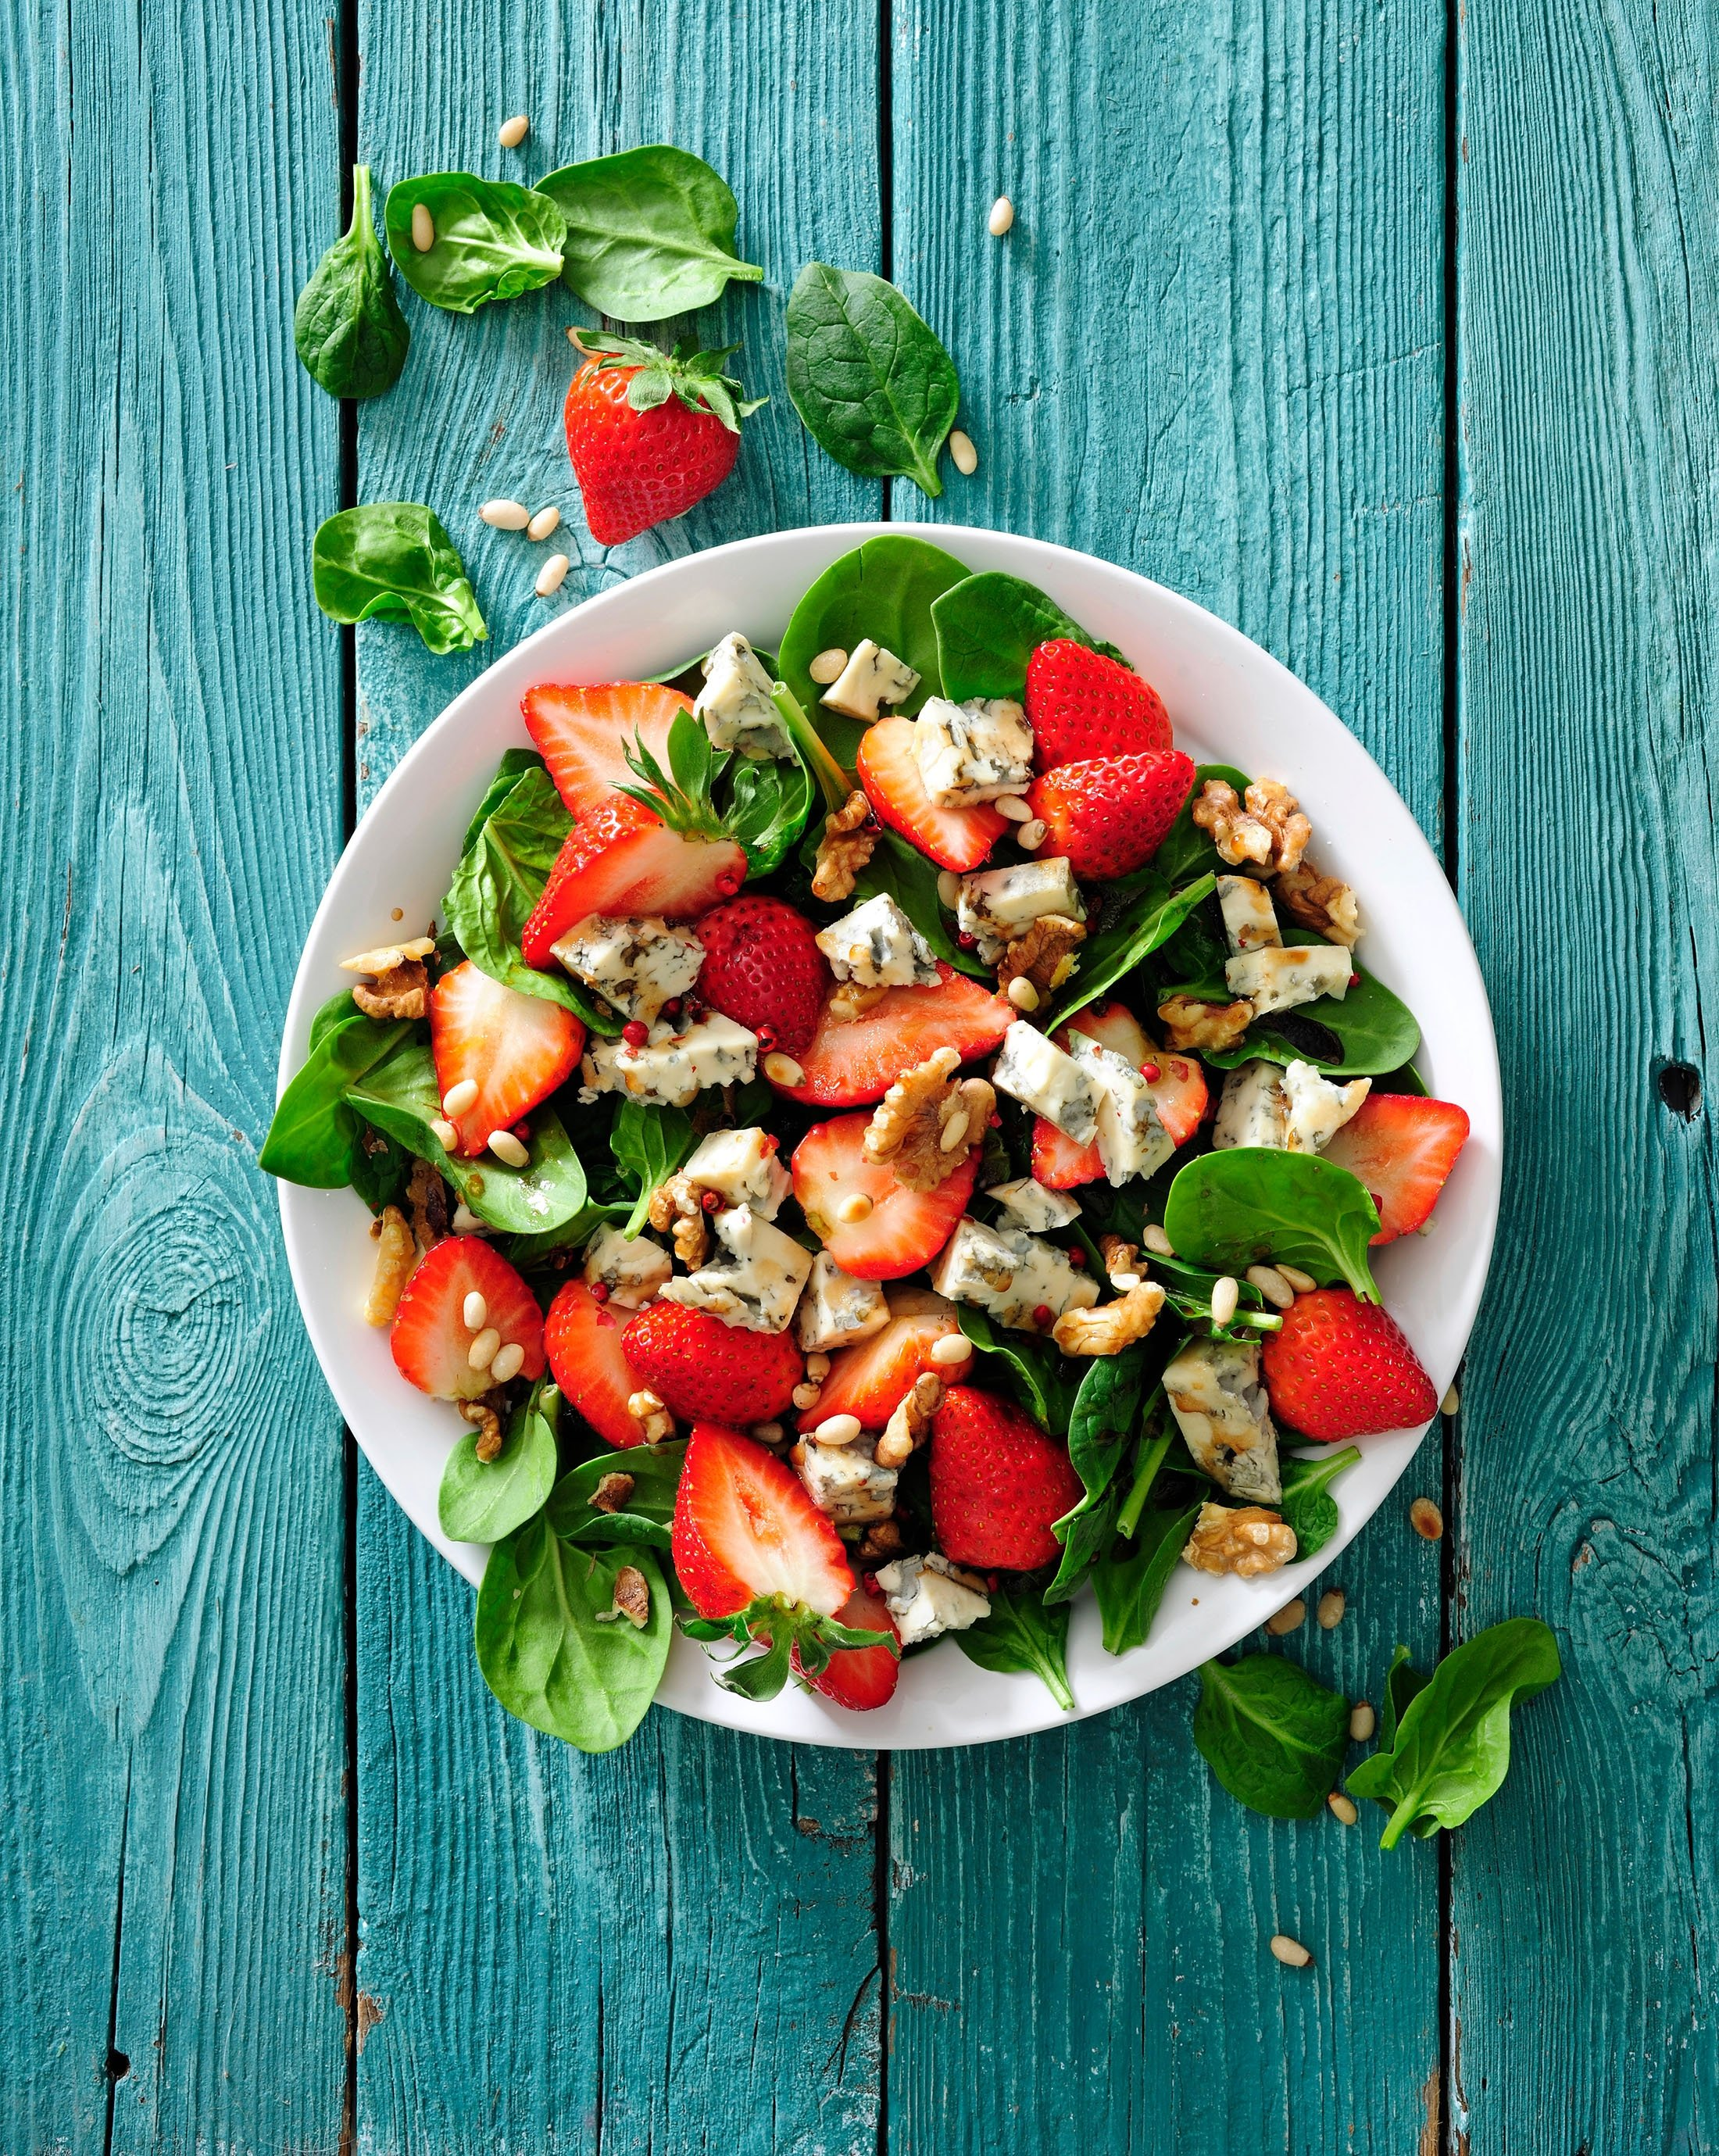 Add nuts and cheese to your spinach and strawberry salad for extra flavor. (Shutterstock Photo)